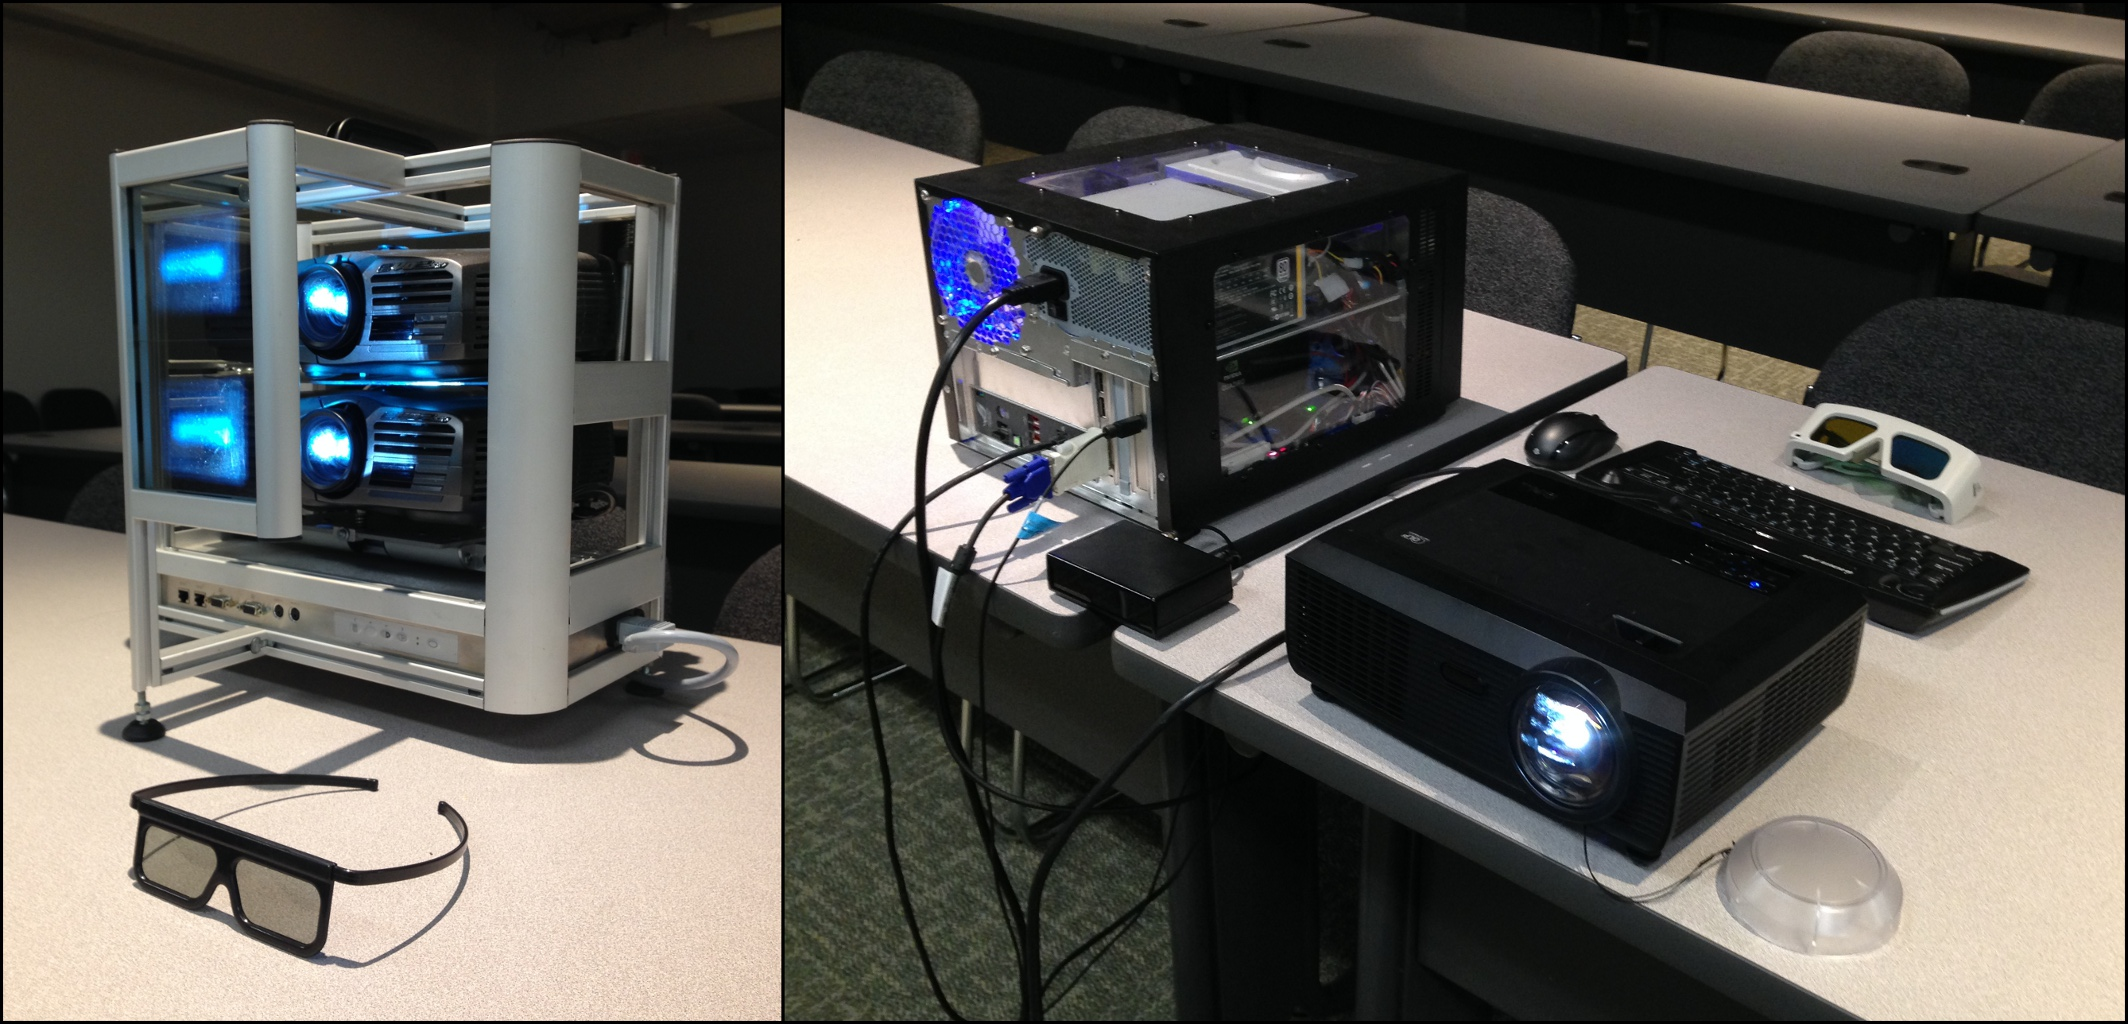 Portable visualization with two passive projectors and one active projector supported by one custom built computer system.